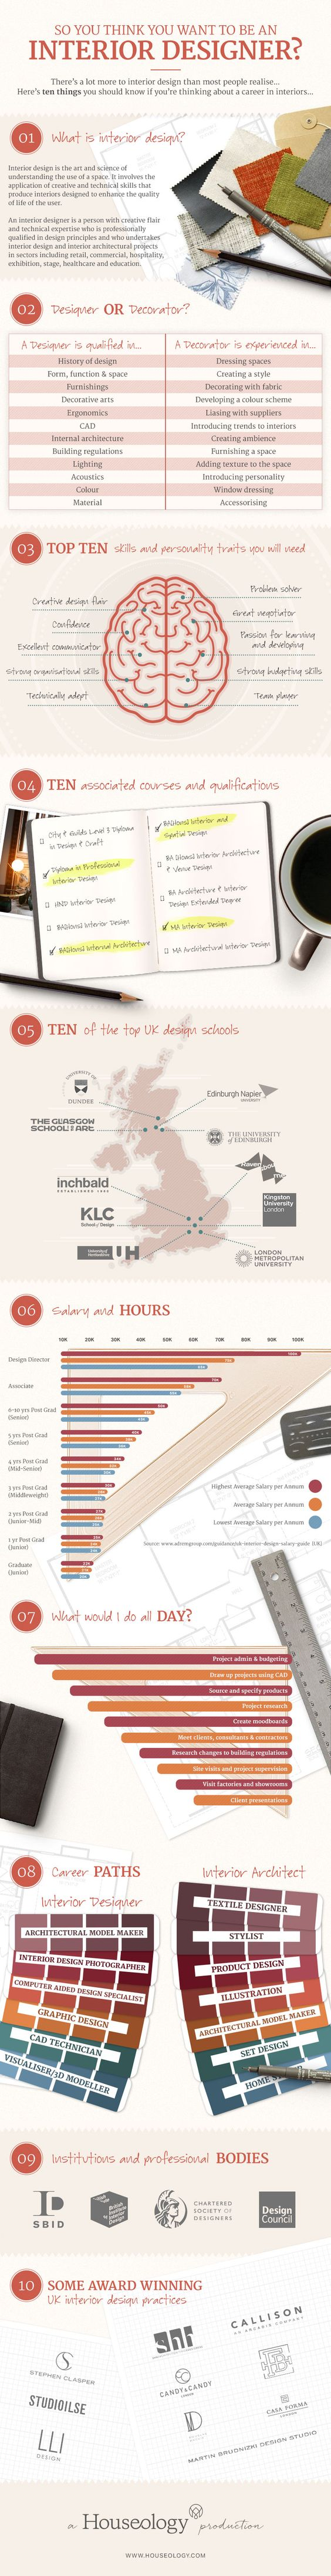 So you Think you Want to be an Interior Designer? #infographic | Career  path, Infographic and Personality